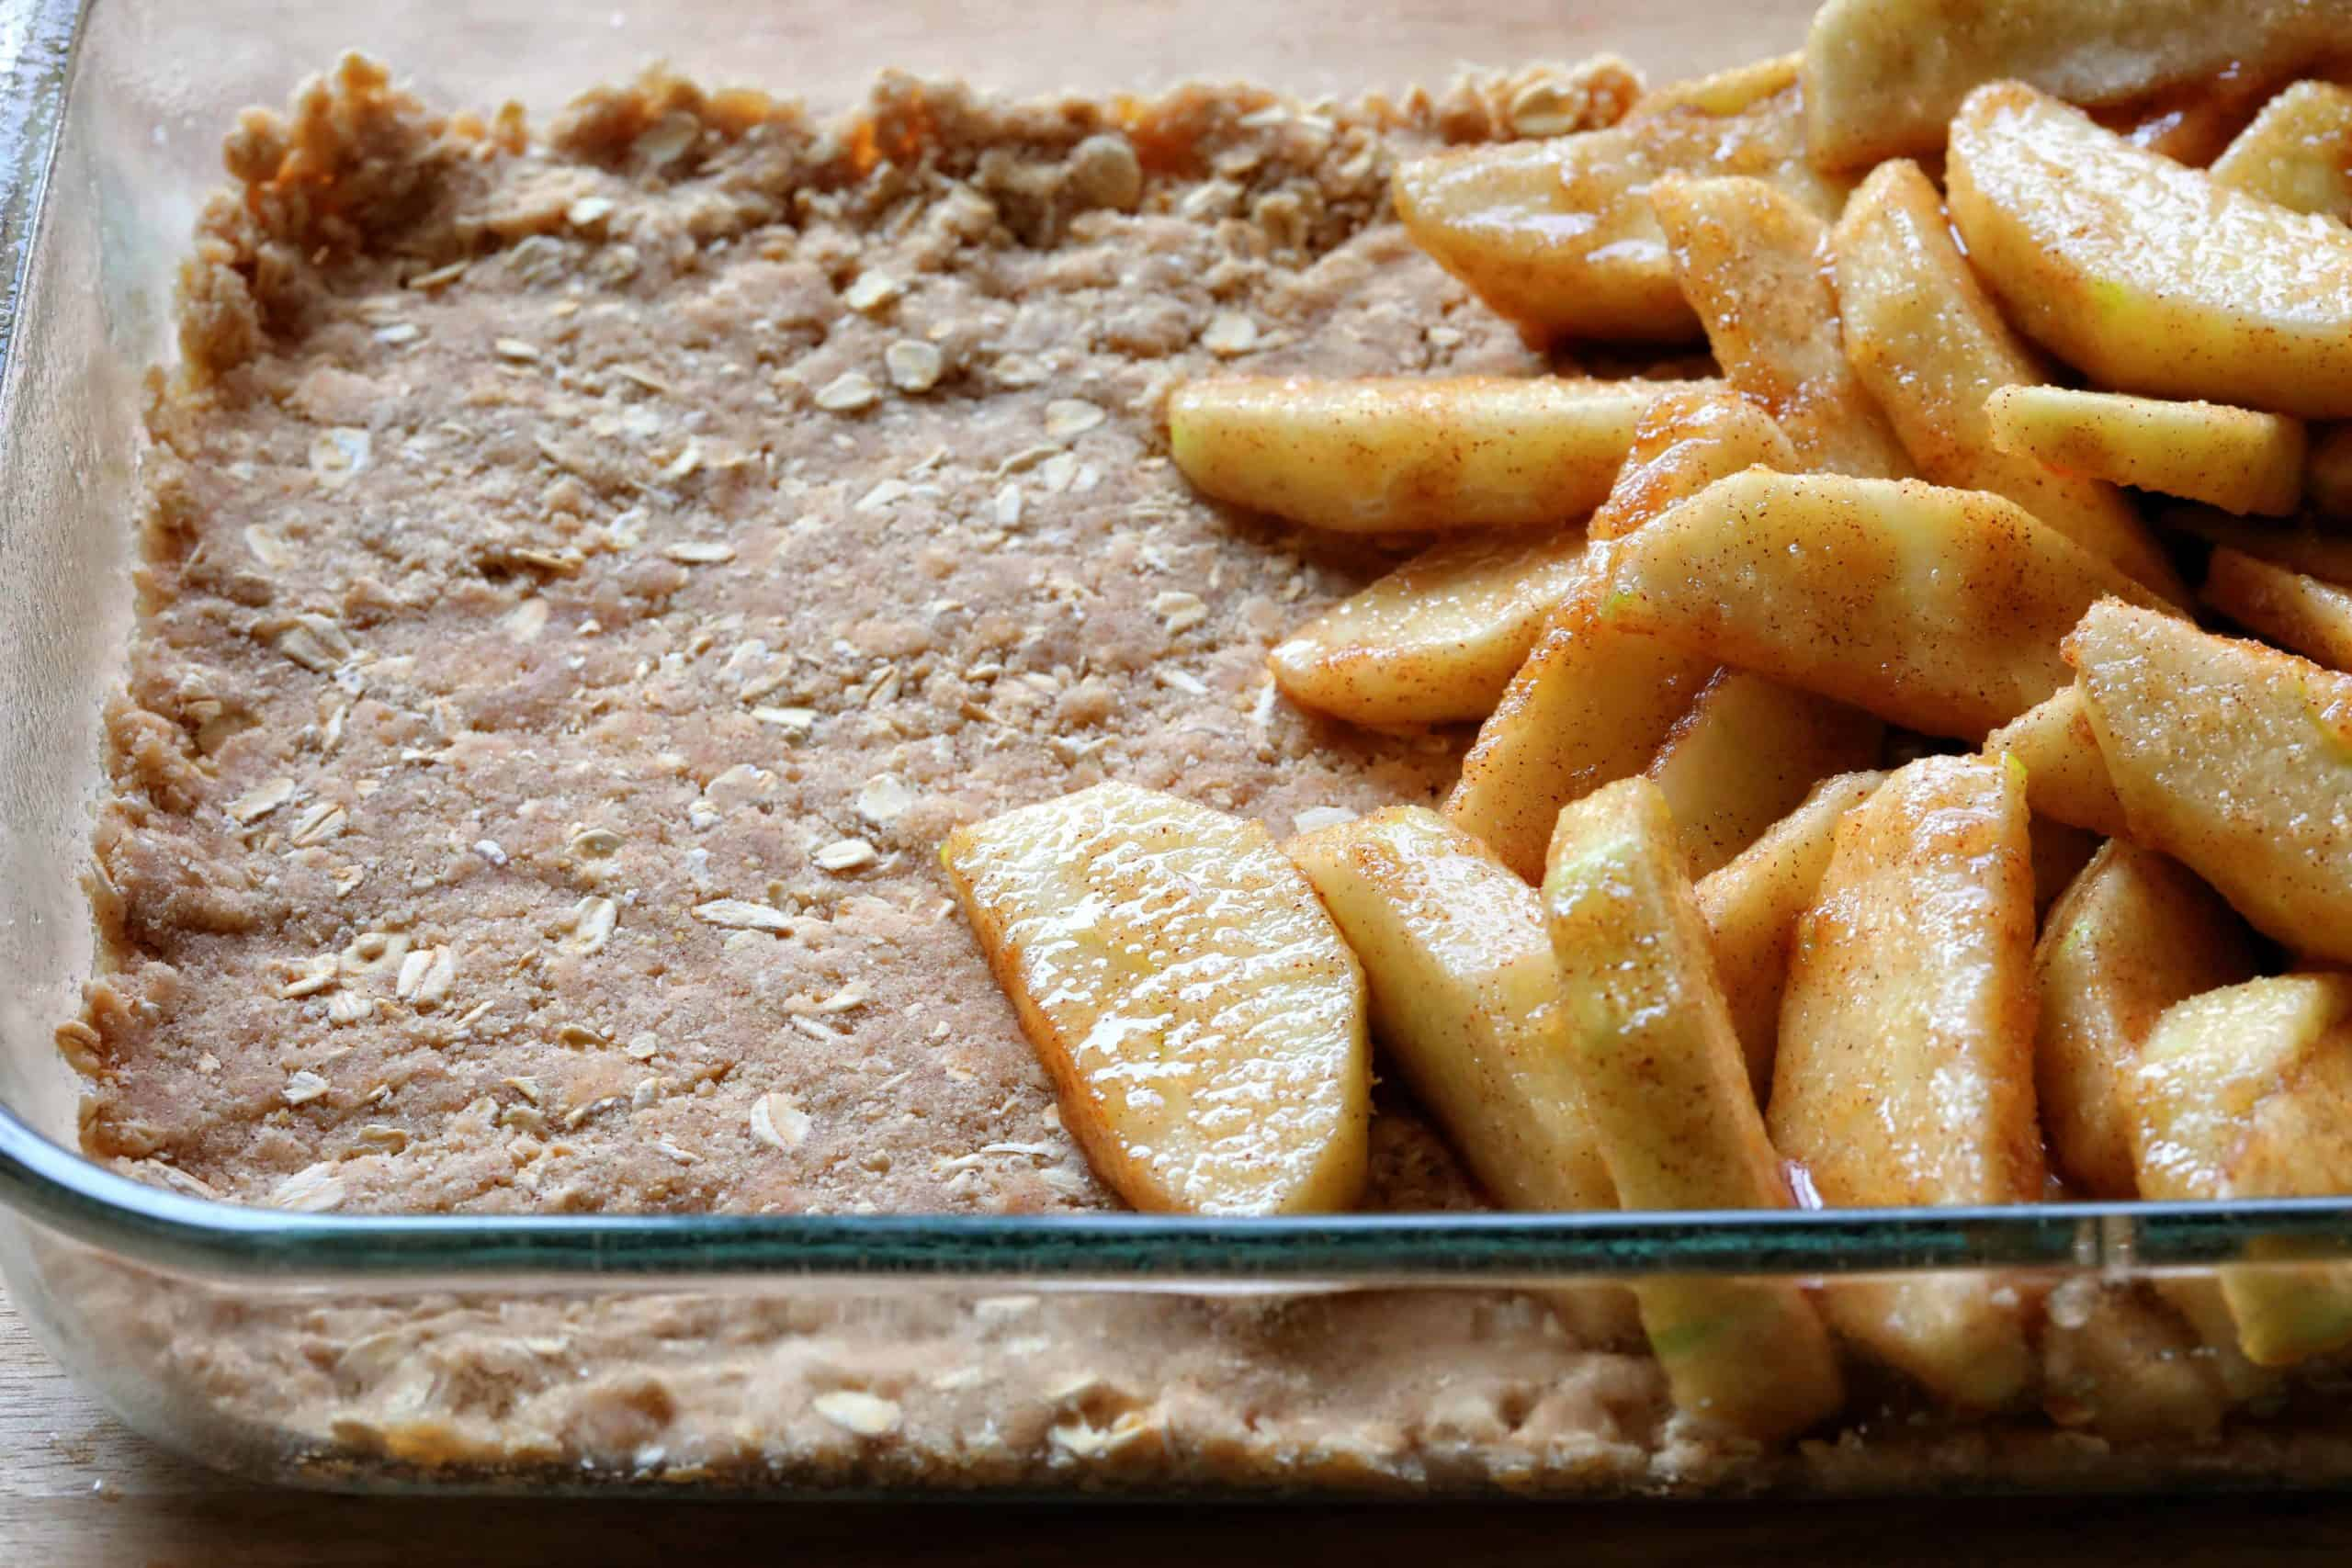 Pan Showing Bottom Layer of Double Crisp Apple Crisp with Apples on Top